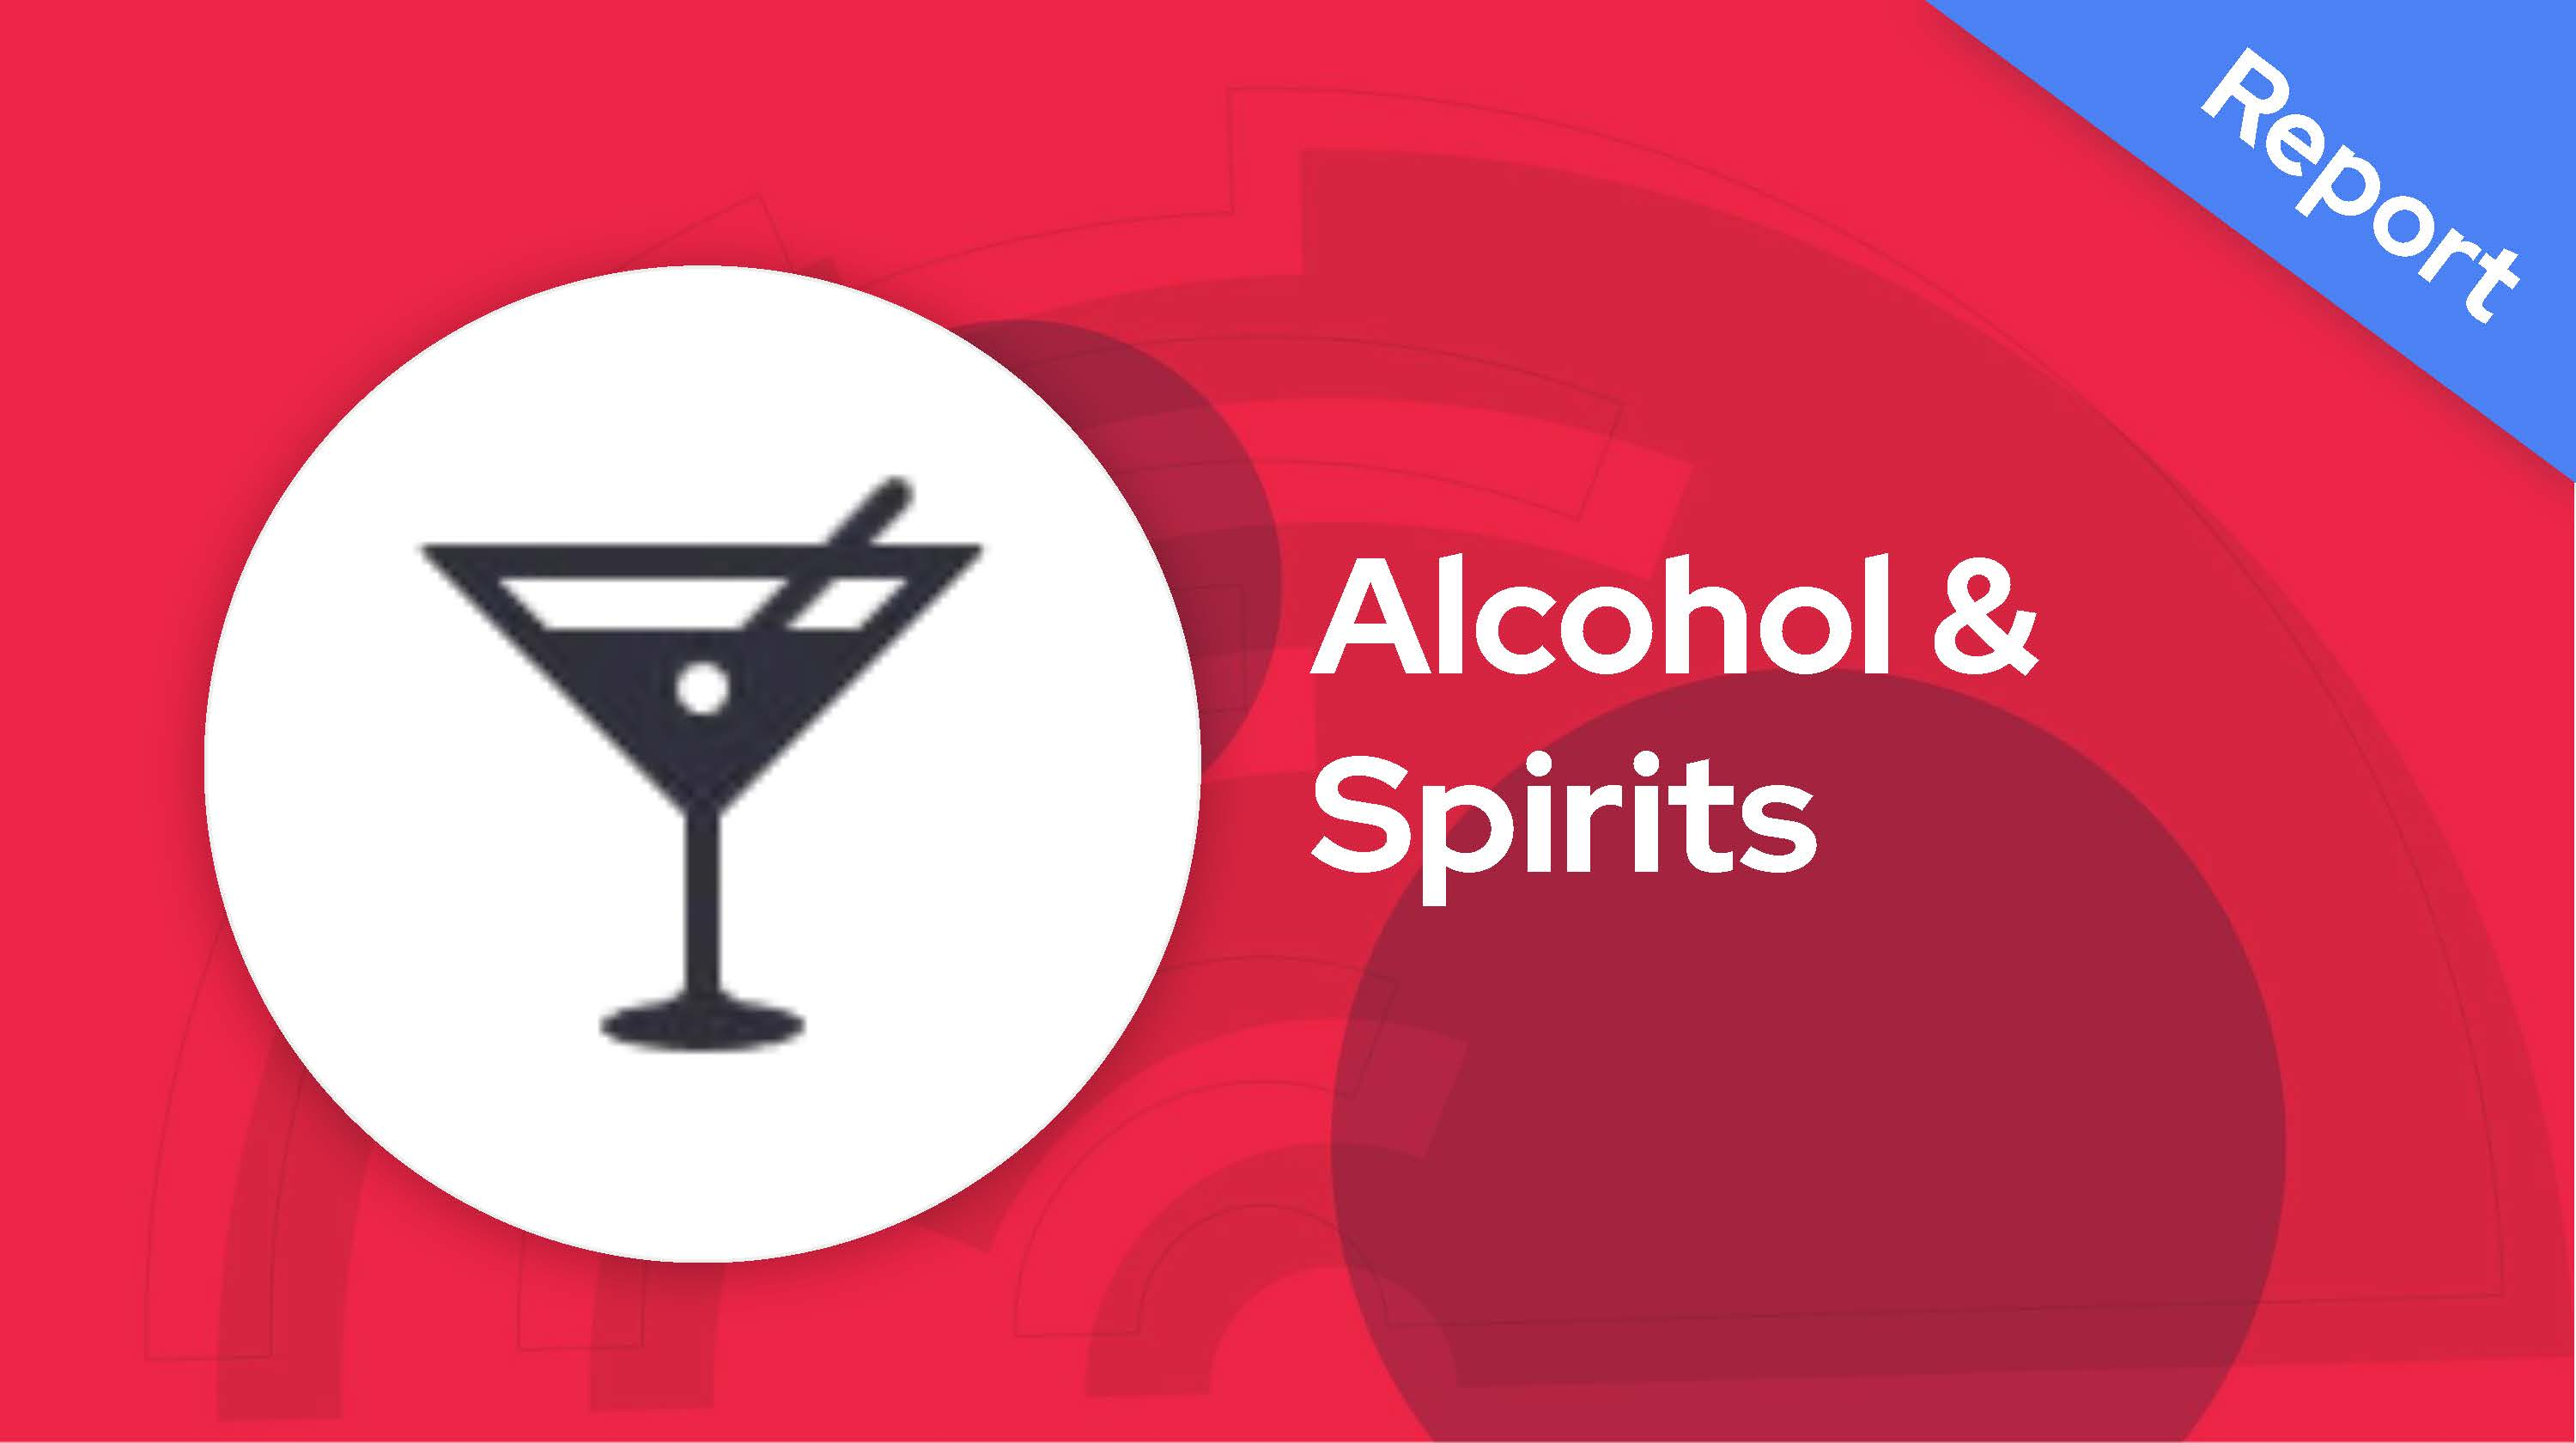 Paid Social Snapshot: Alcohol & Spirits